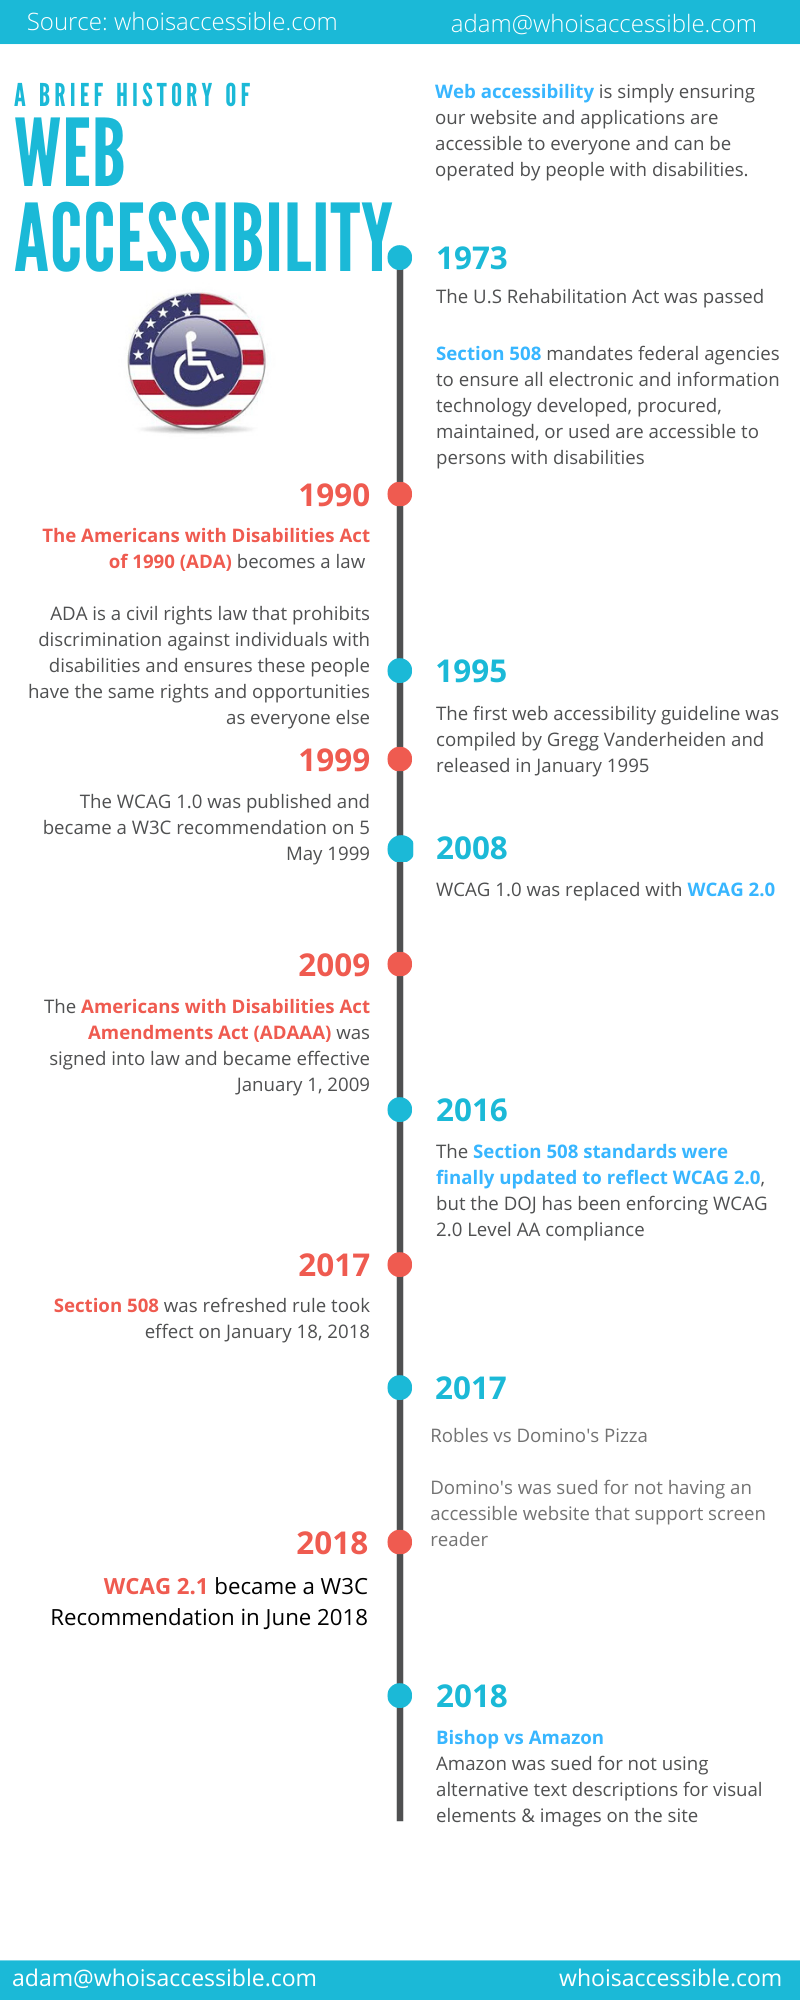 Web Accessibility History Timeline Infographic